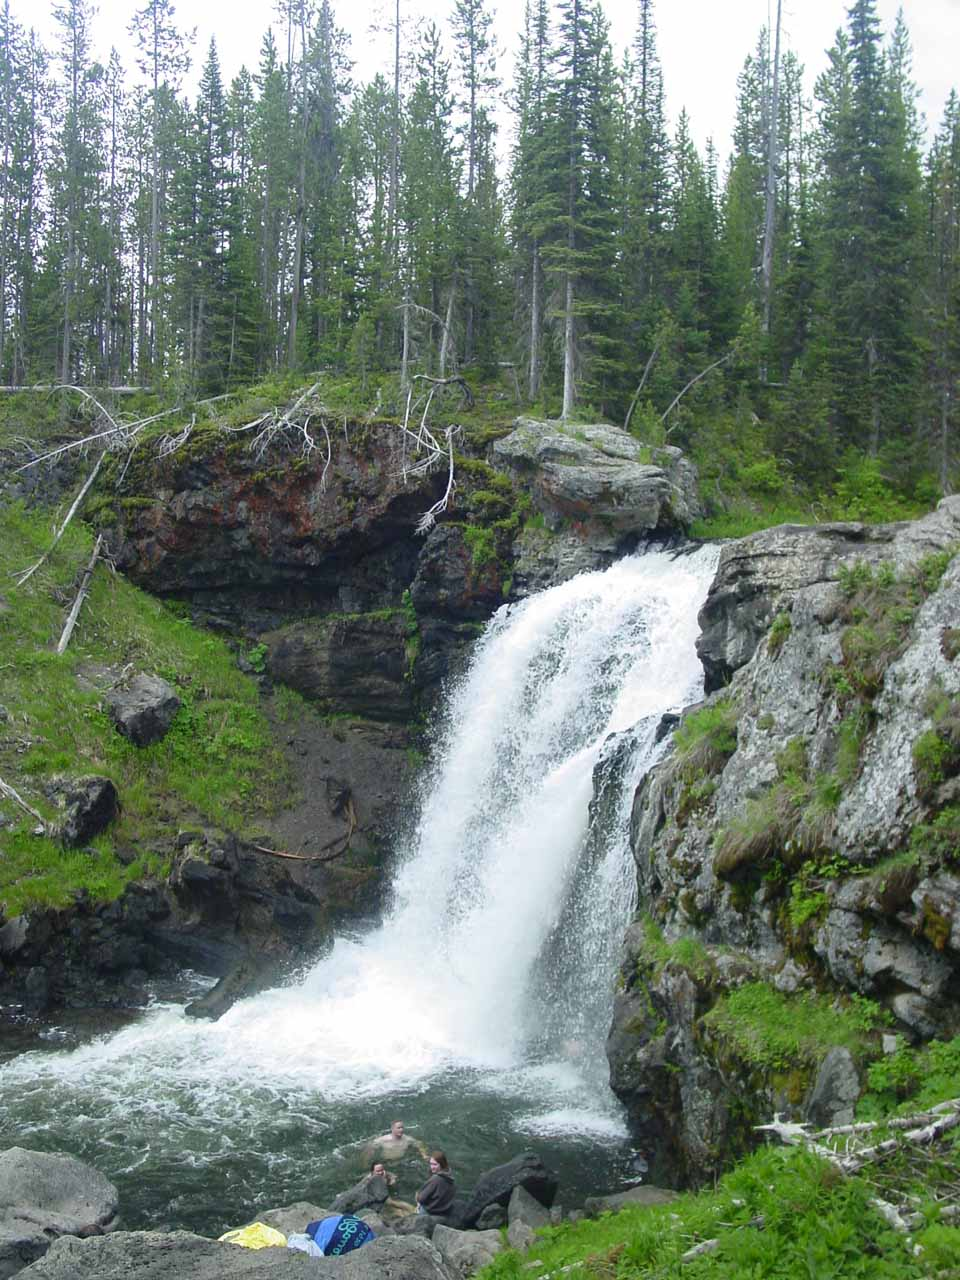 Moose Falls with some people swimming at its base